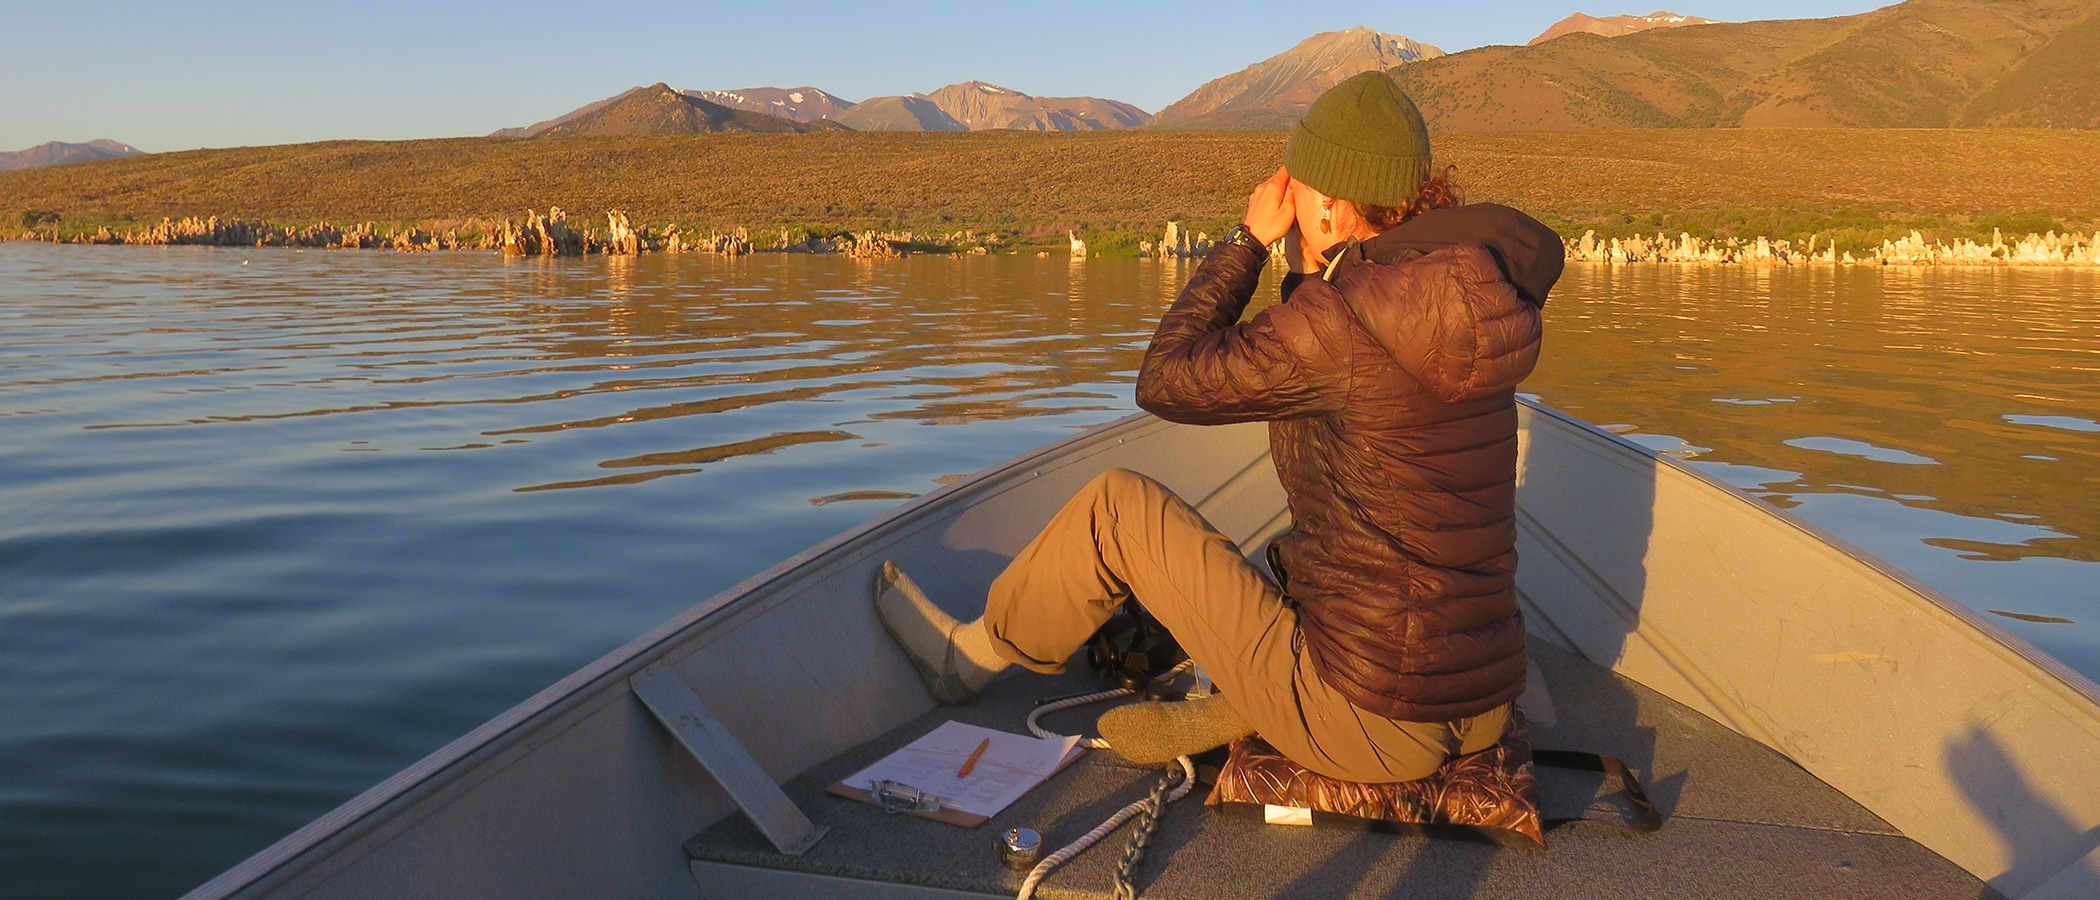 Person sitting on a boat looking out at Mono Lake in the early morning sun with the mountains in the background.